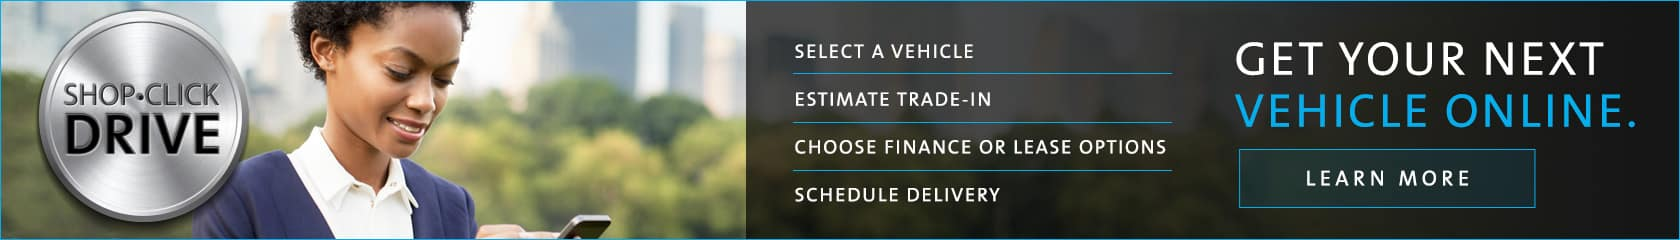 Use Shop Click Drive to get your next vehicle online